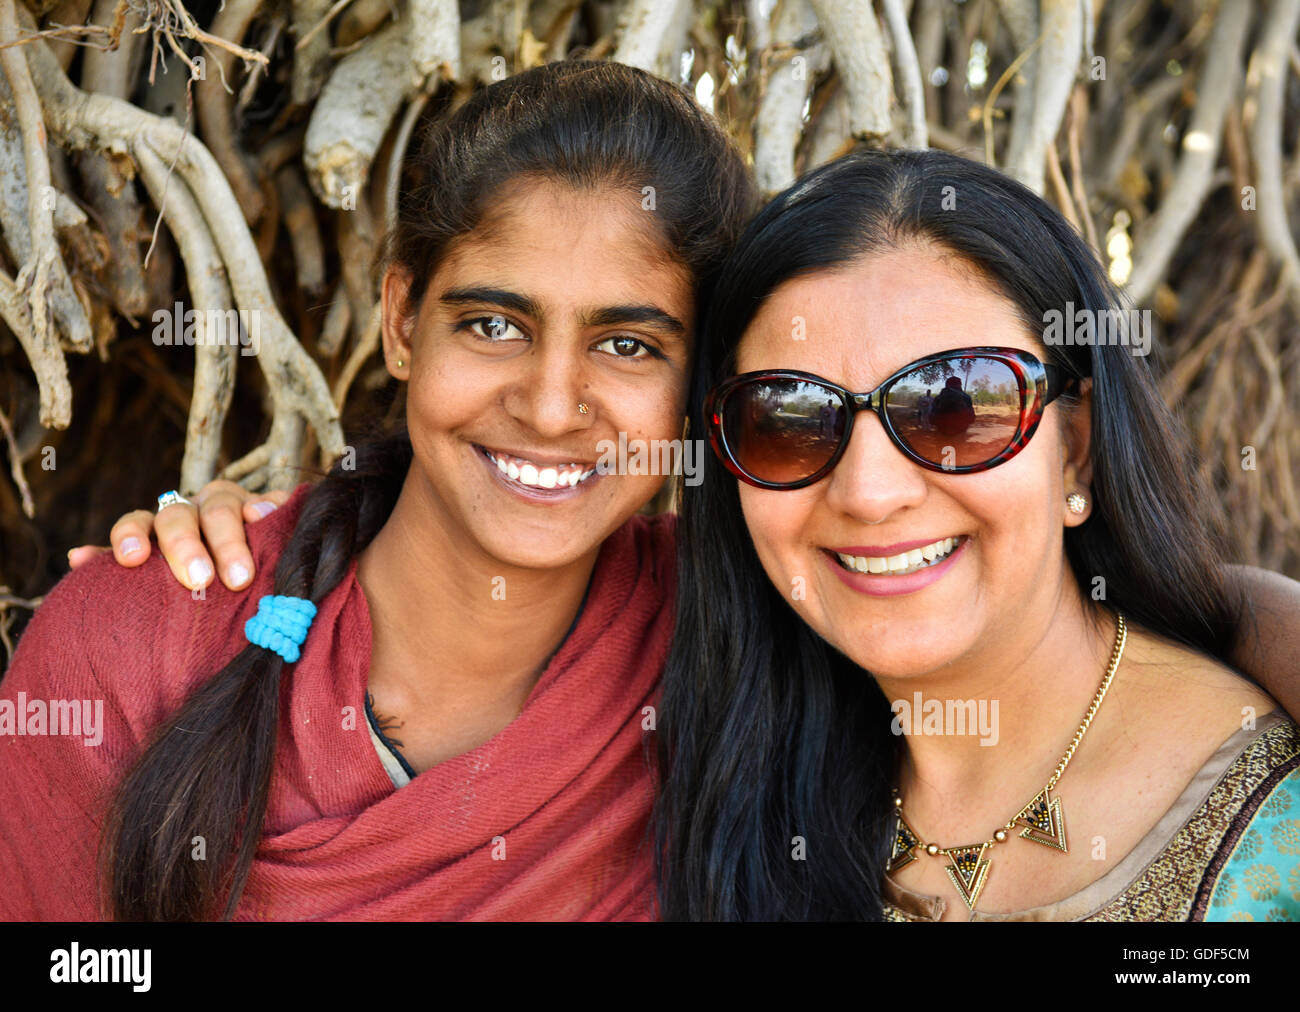 A dream come true for union of two beautiful females meeting with emotions of great joy and memories of true family - Stock Image